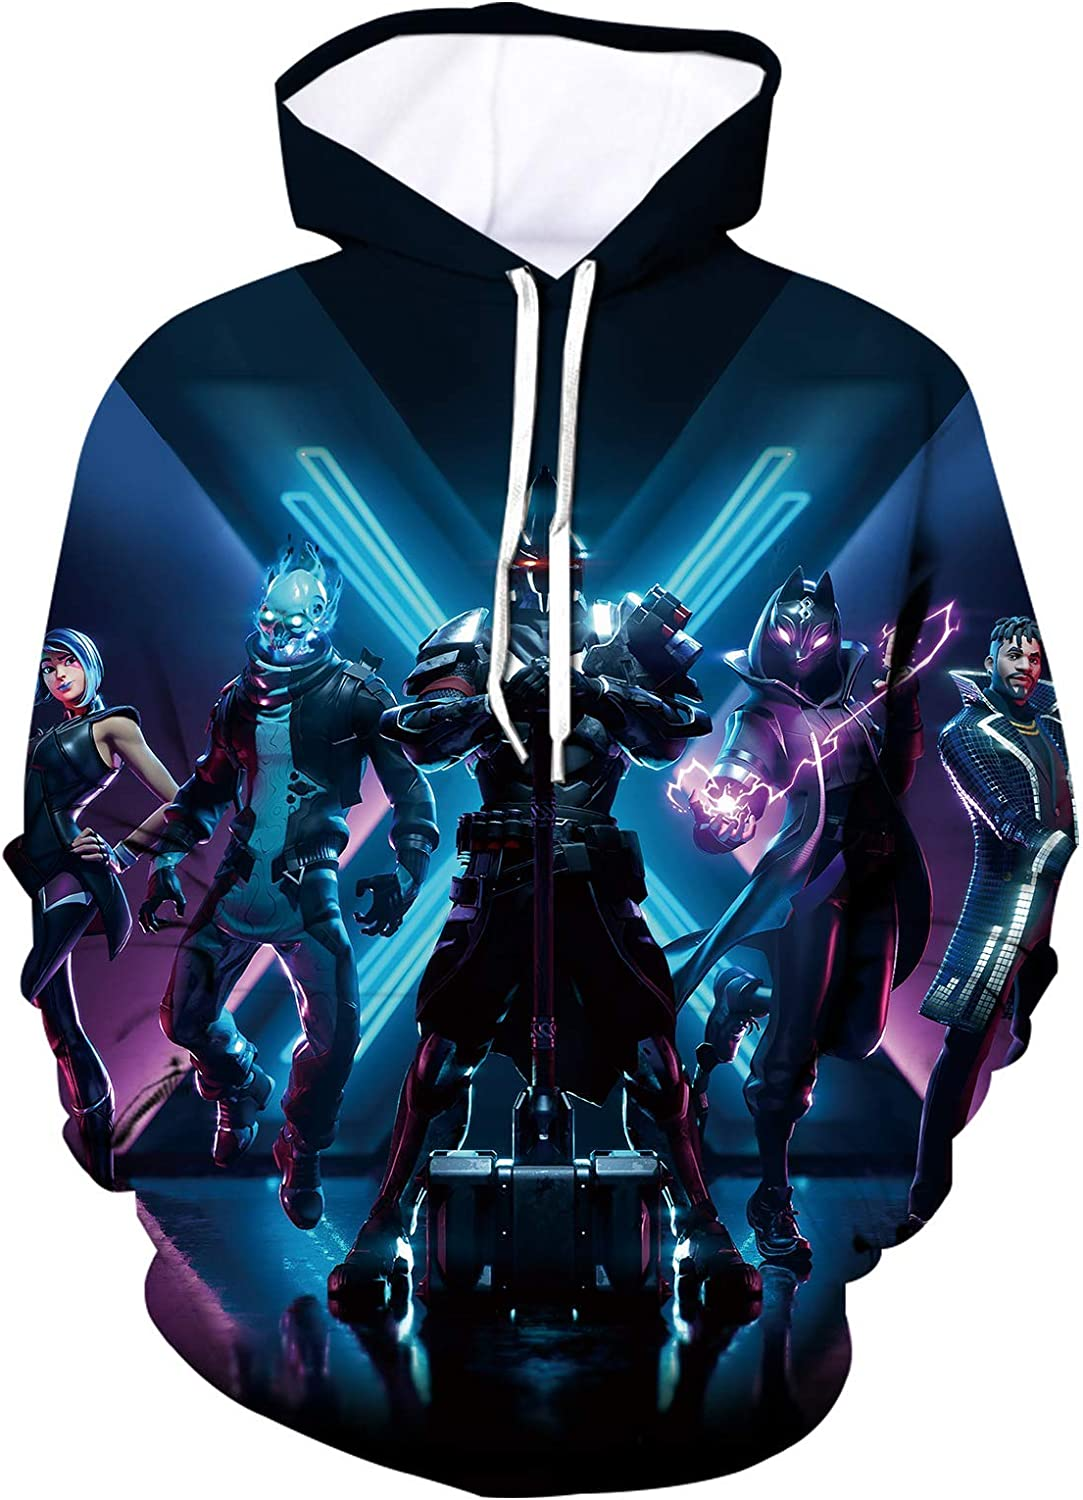 Epic Games Fortnite Hoodie and Beamed Sweatpants Suit Hooded Sweatshirts for Boys Girls Youth